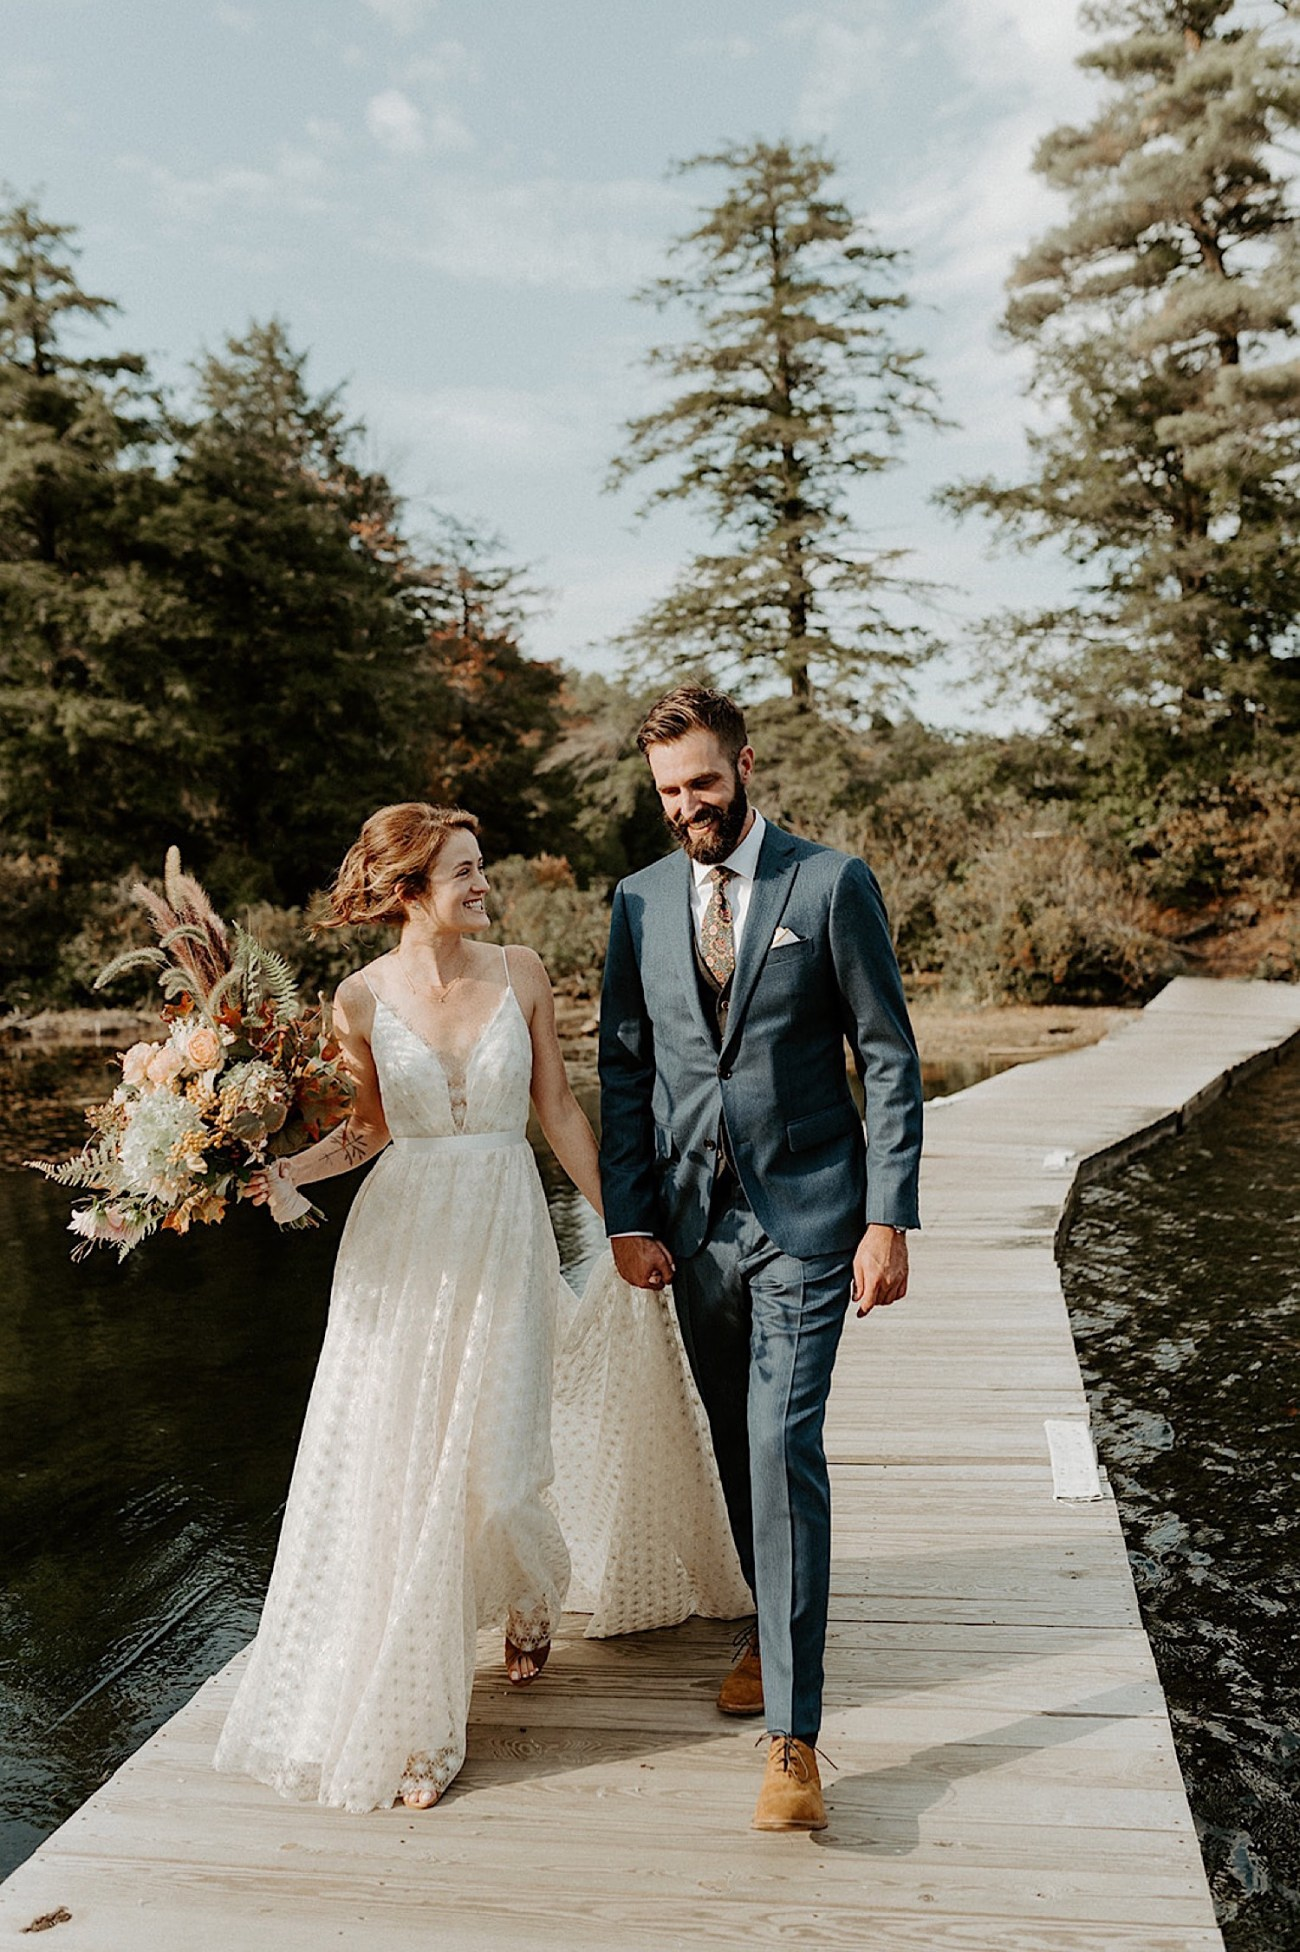 053 Lakeside Wedding Outdoor Wedding Boho Inspiration Wedding Destination Wedding Maine Wedding Connecticut Wedding Photographer Boston Wedding Photographer